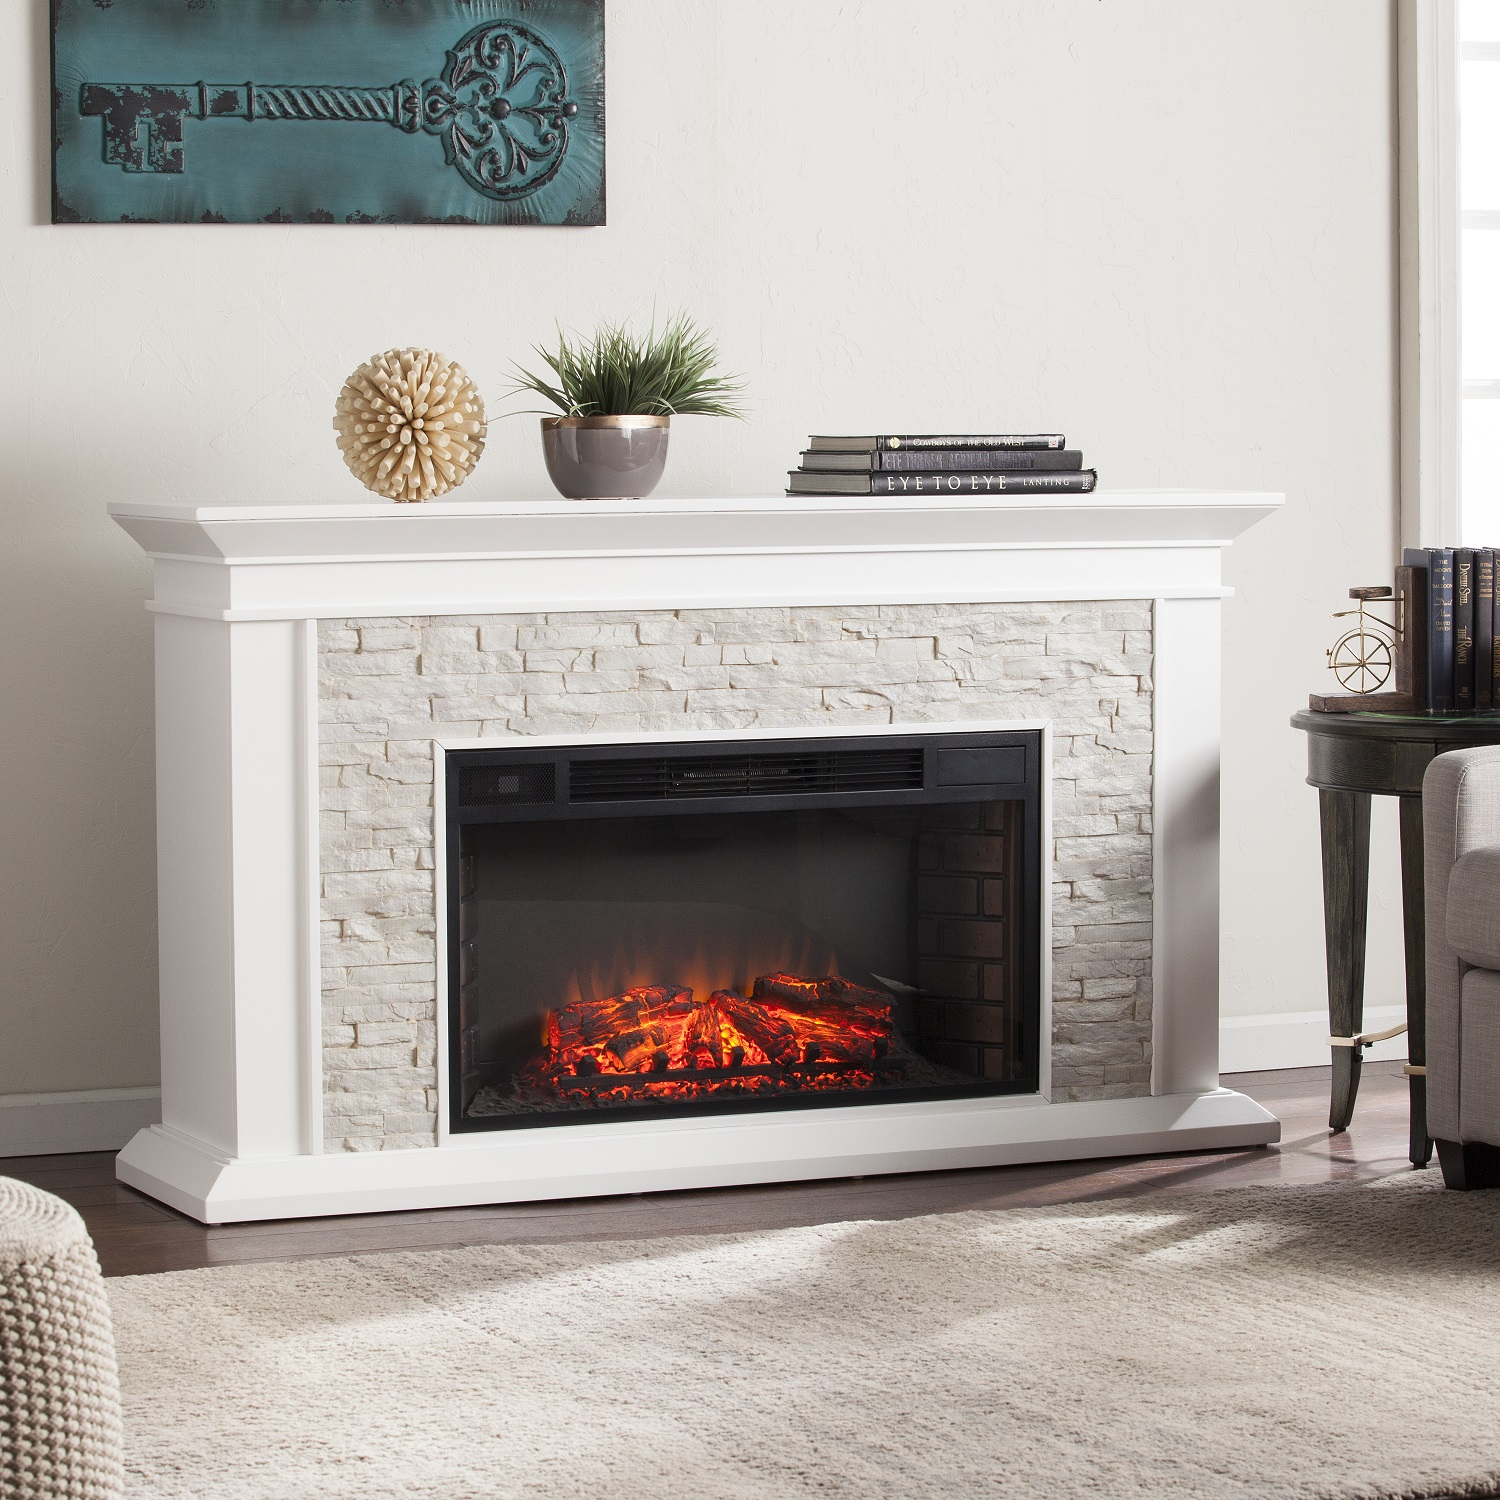 Western romanticism warms to life in this striking electric fireplace. Crisp white finish highlights subtle woodwork; rustic white faux stacked stone encases the firebox.